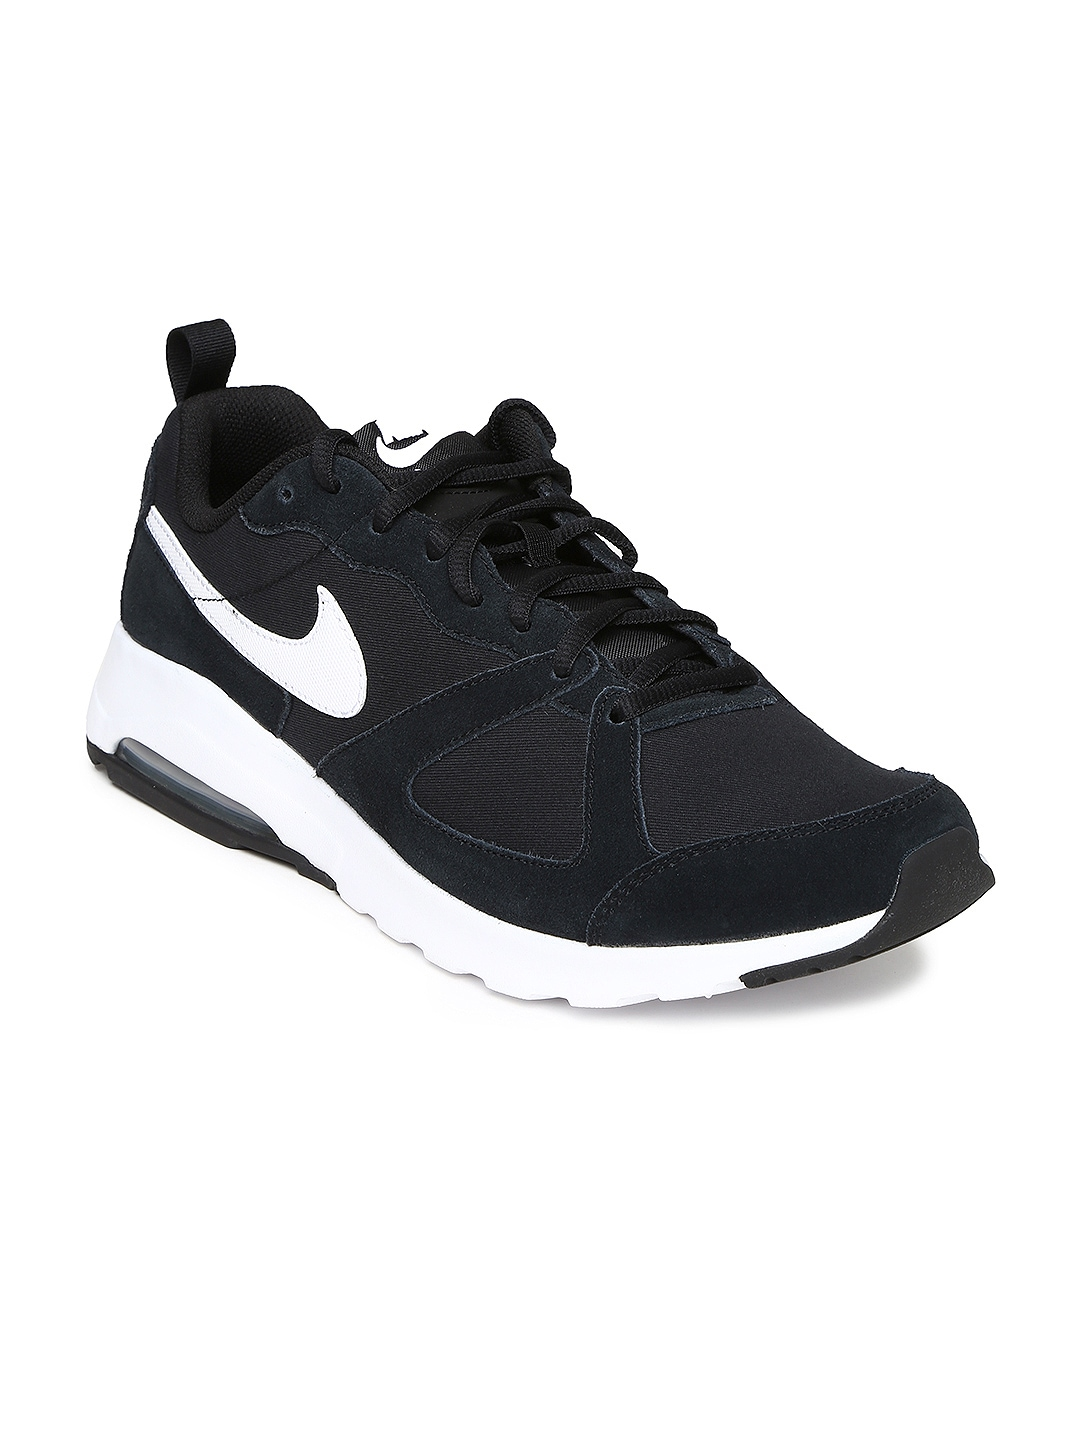 Mens White Style Shoes